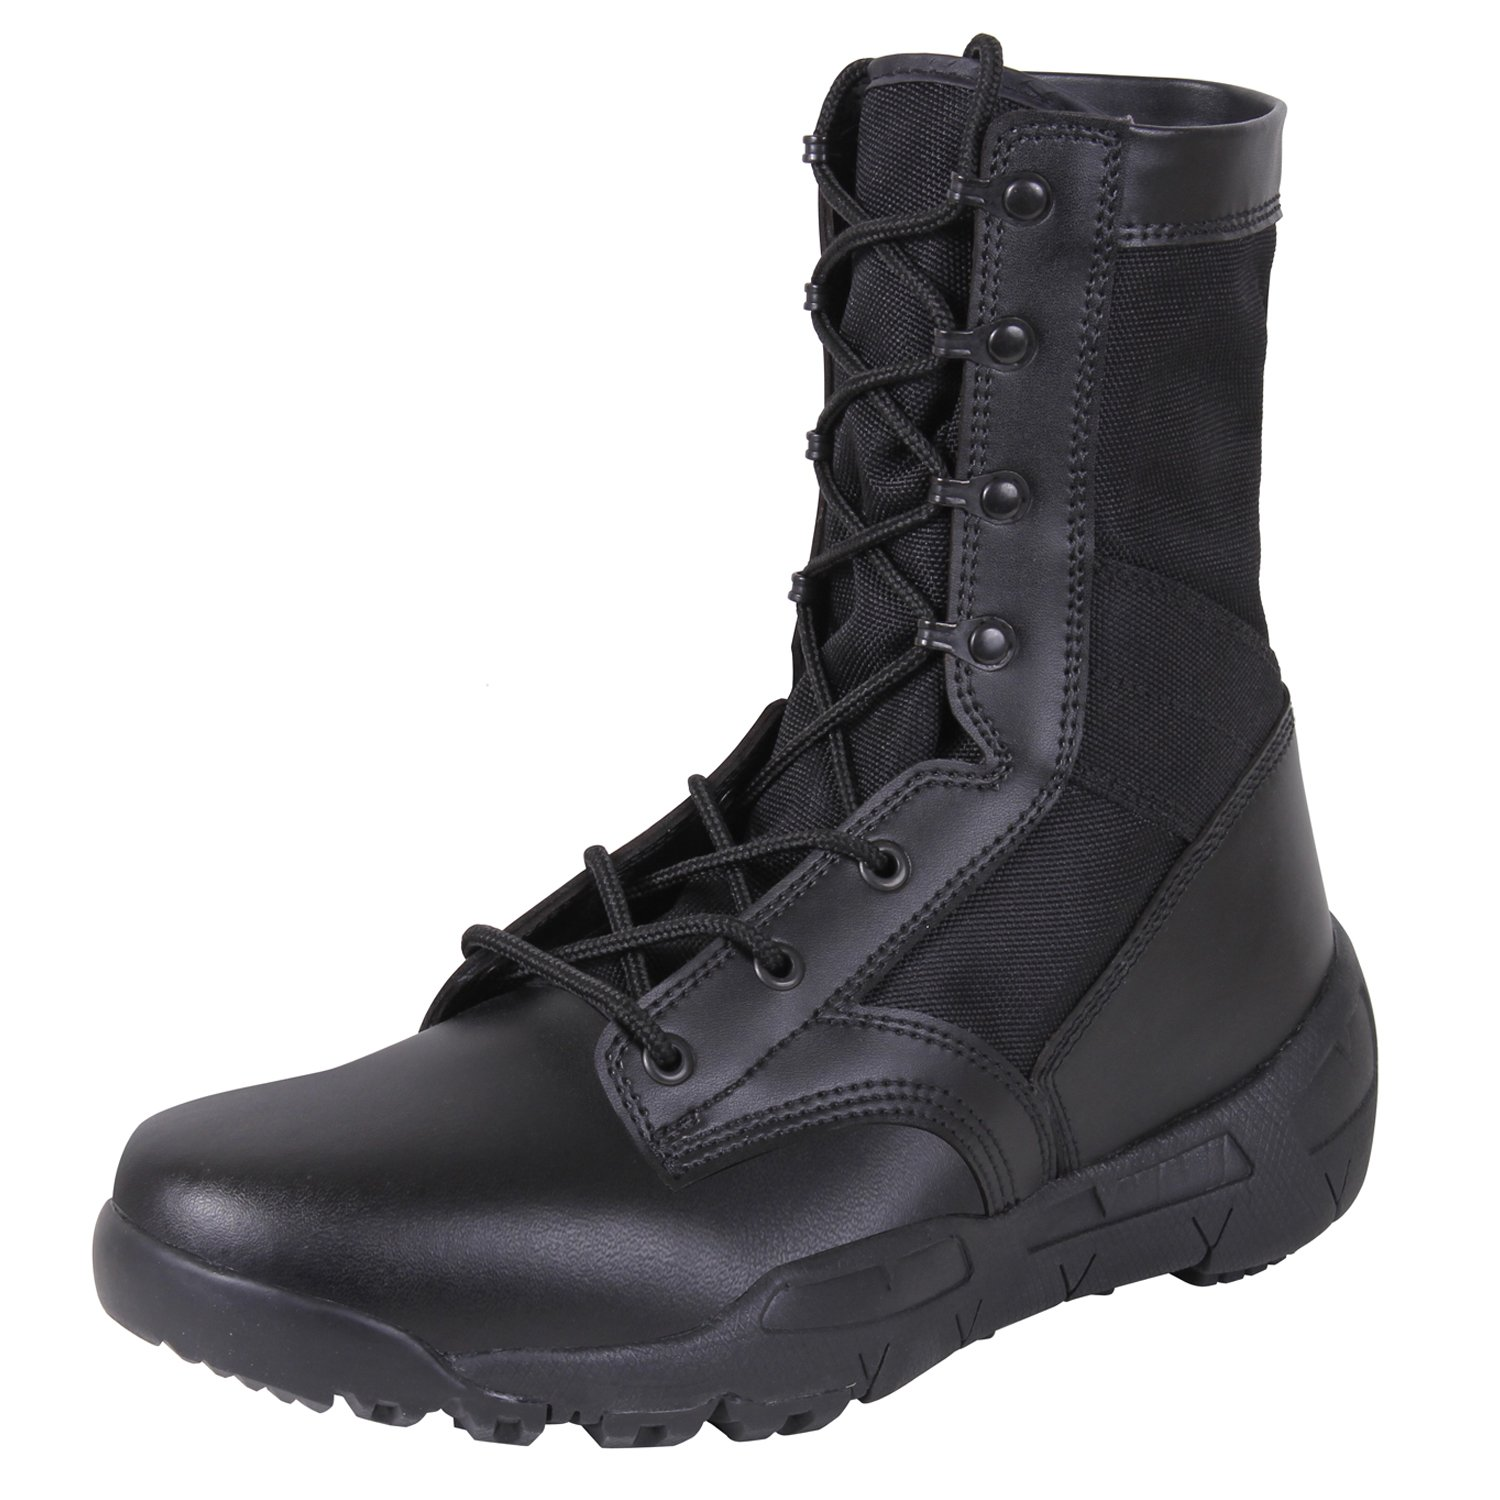 Rothco V-Max Lightweight Tactical Boot, Black, Size 10